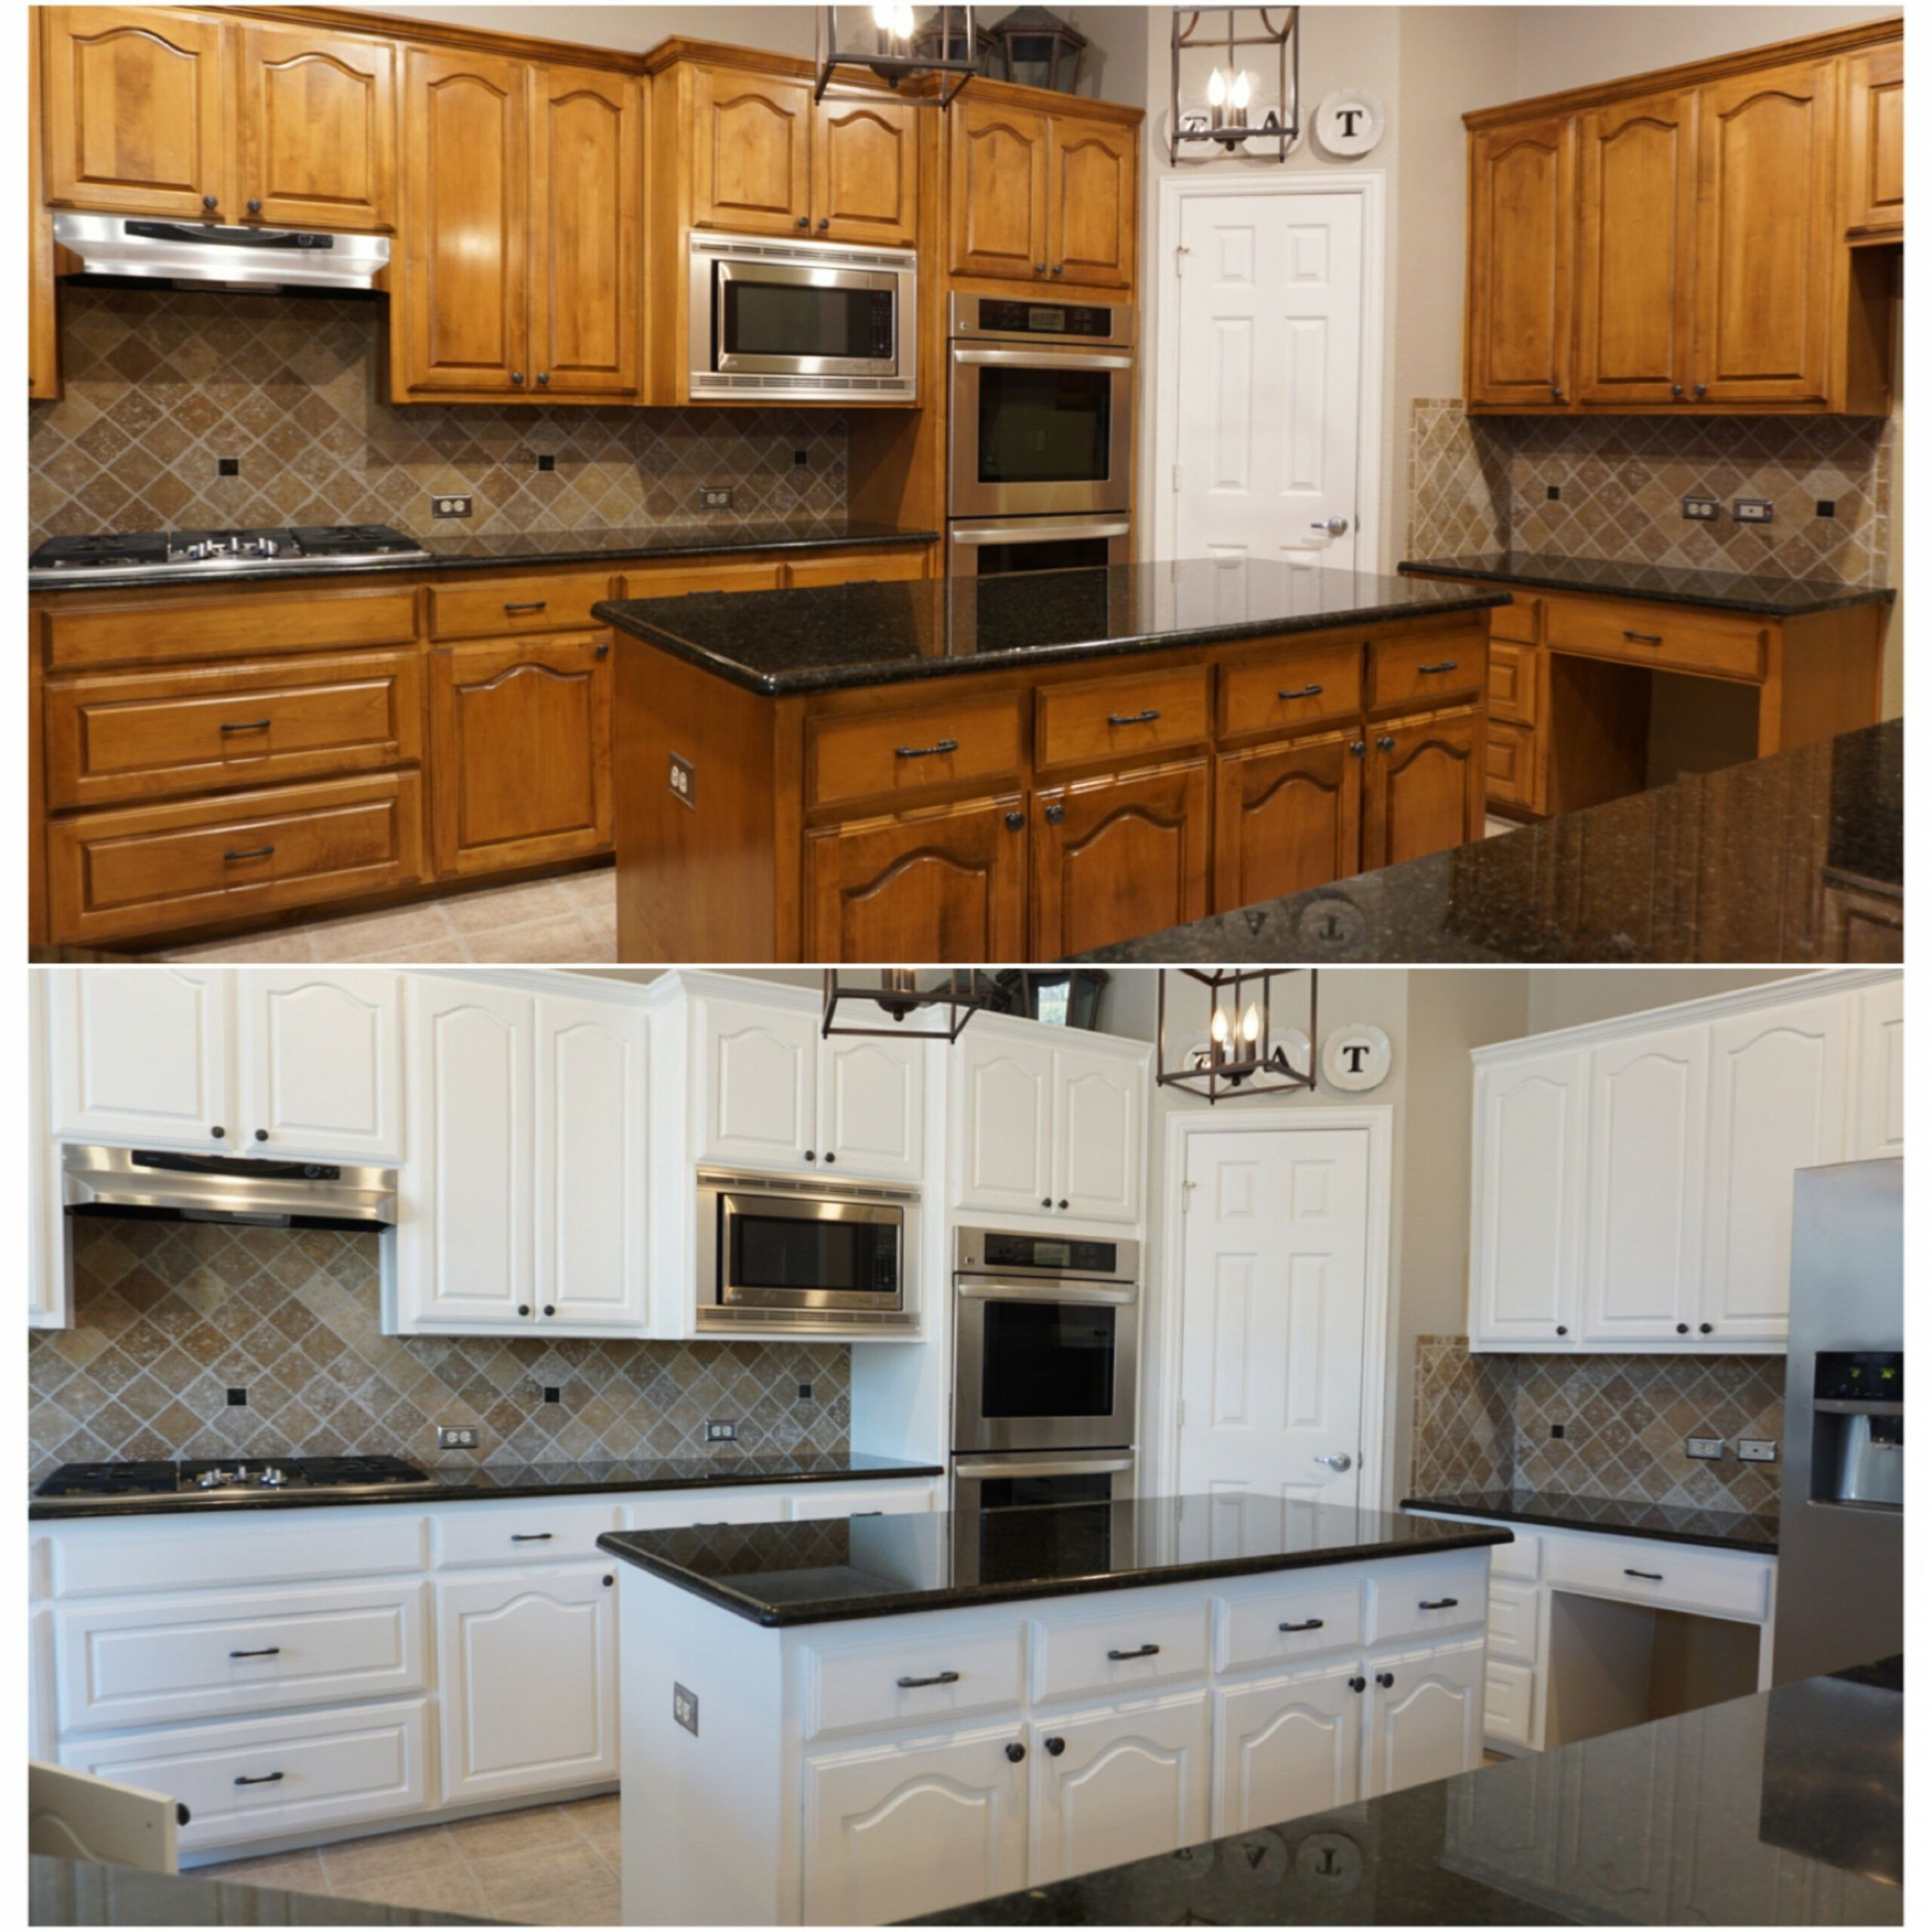 Can White Kitchen Cabinets Be Repainted: Pin By Painter Legend On Painting In 2020